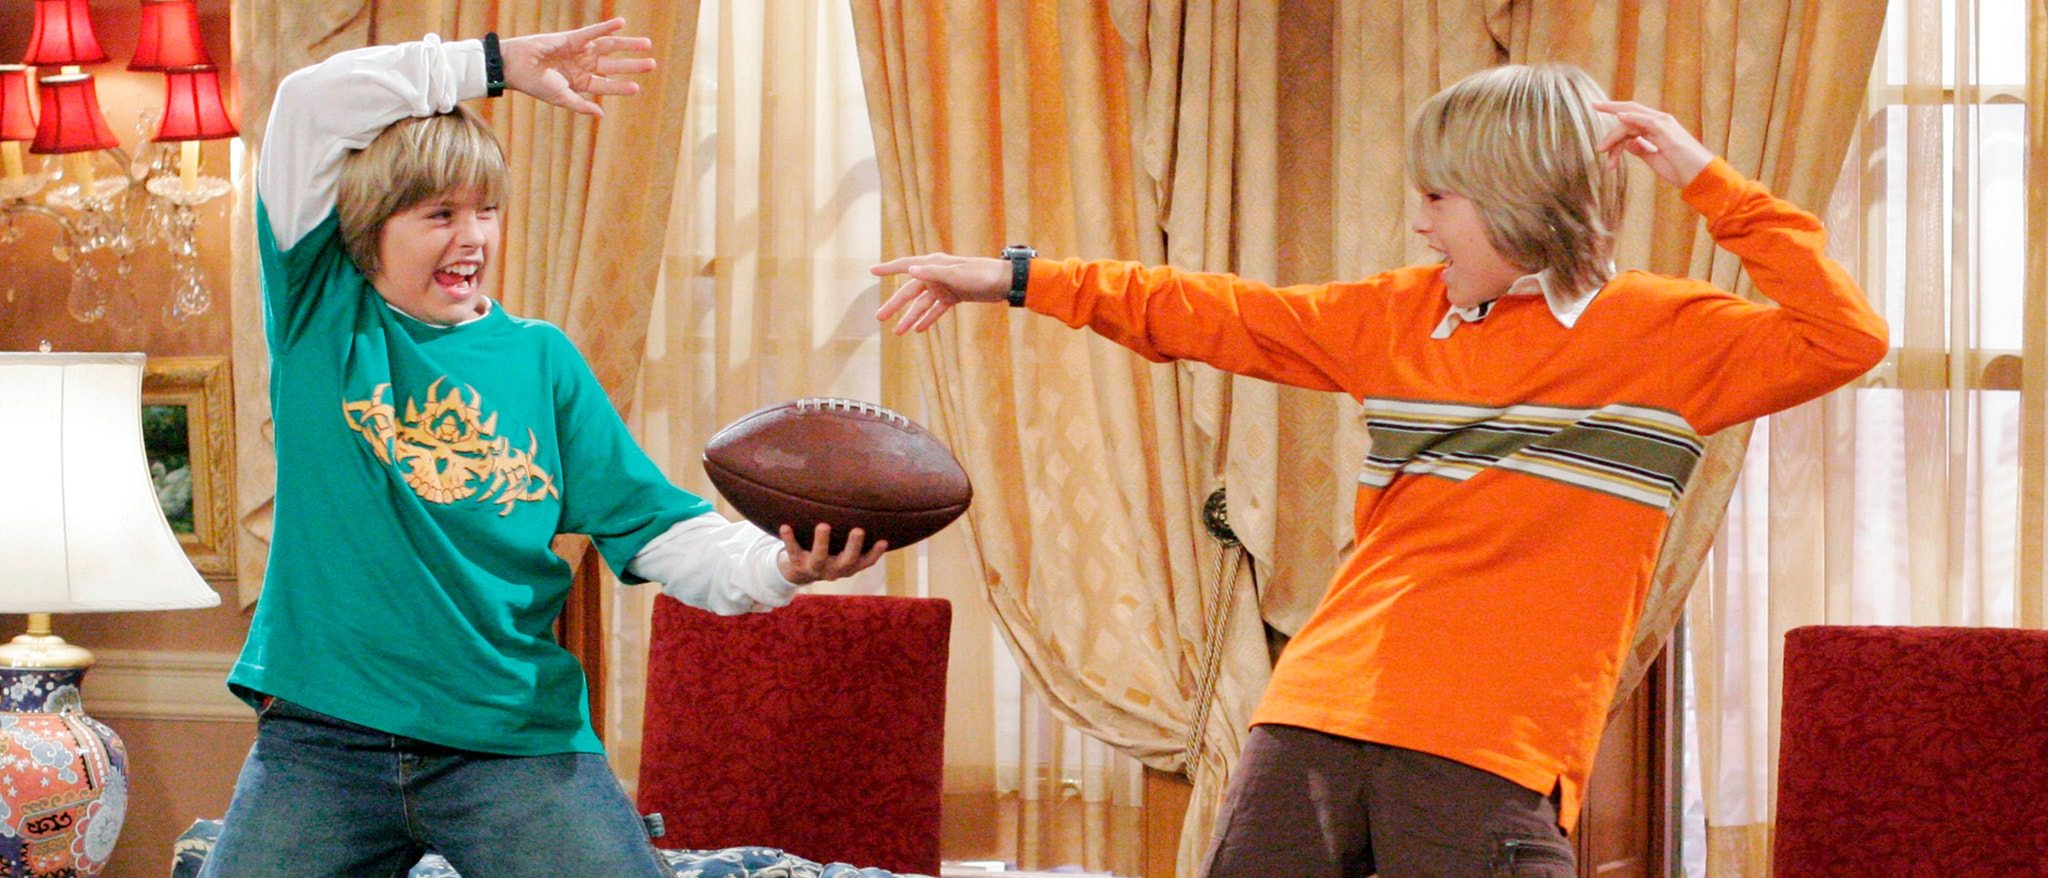 The Suite Life of Zack and Cody hero